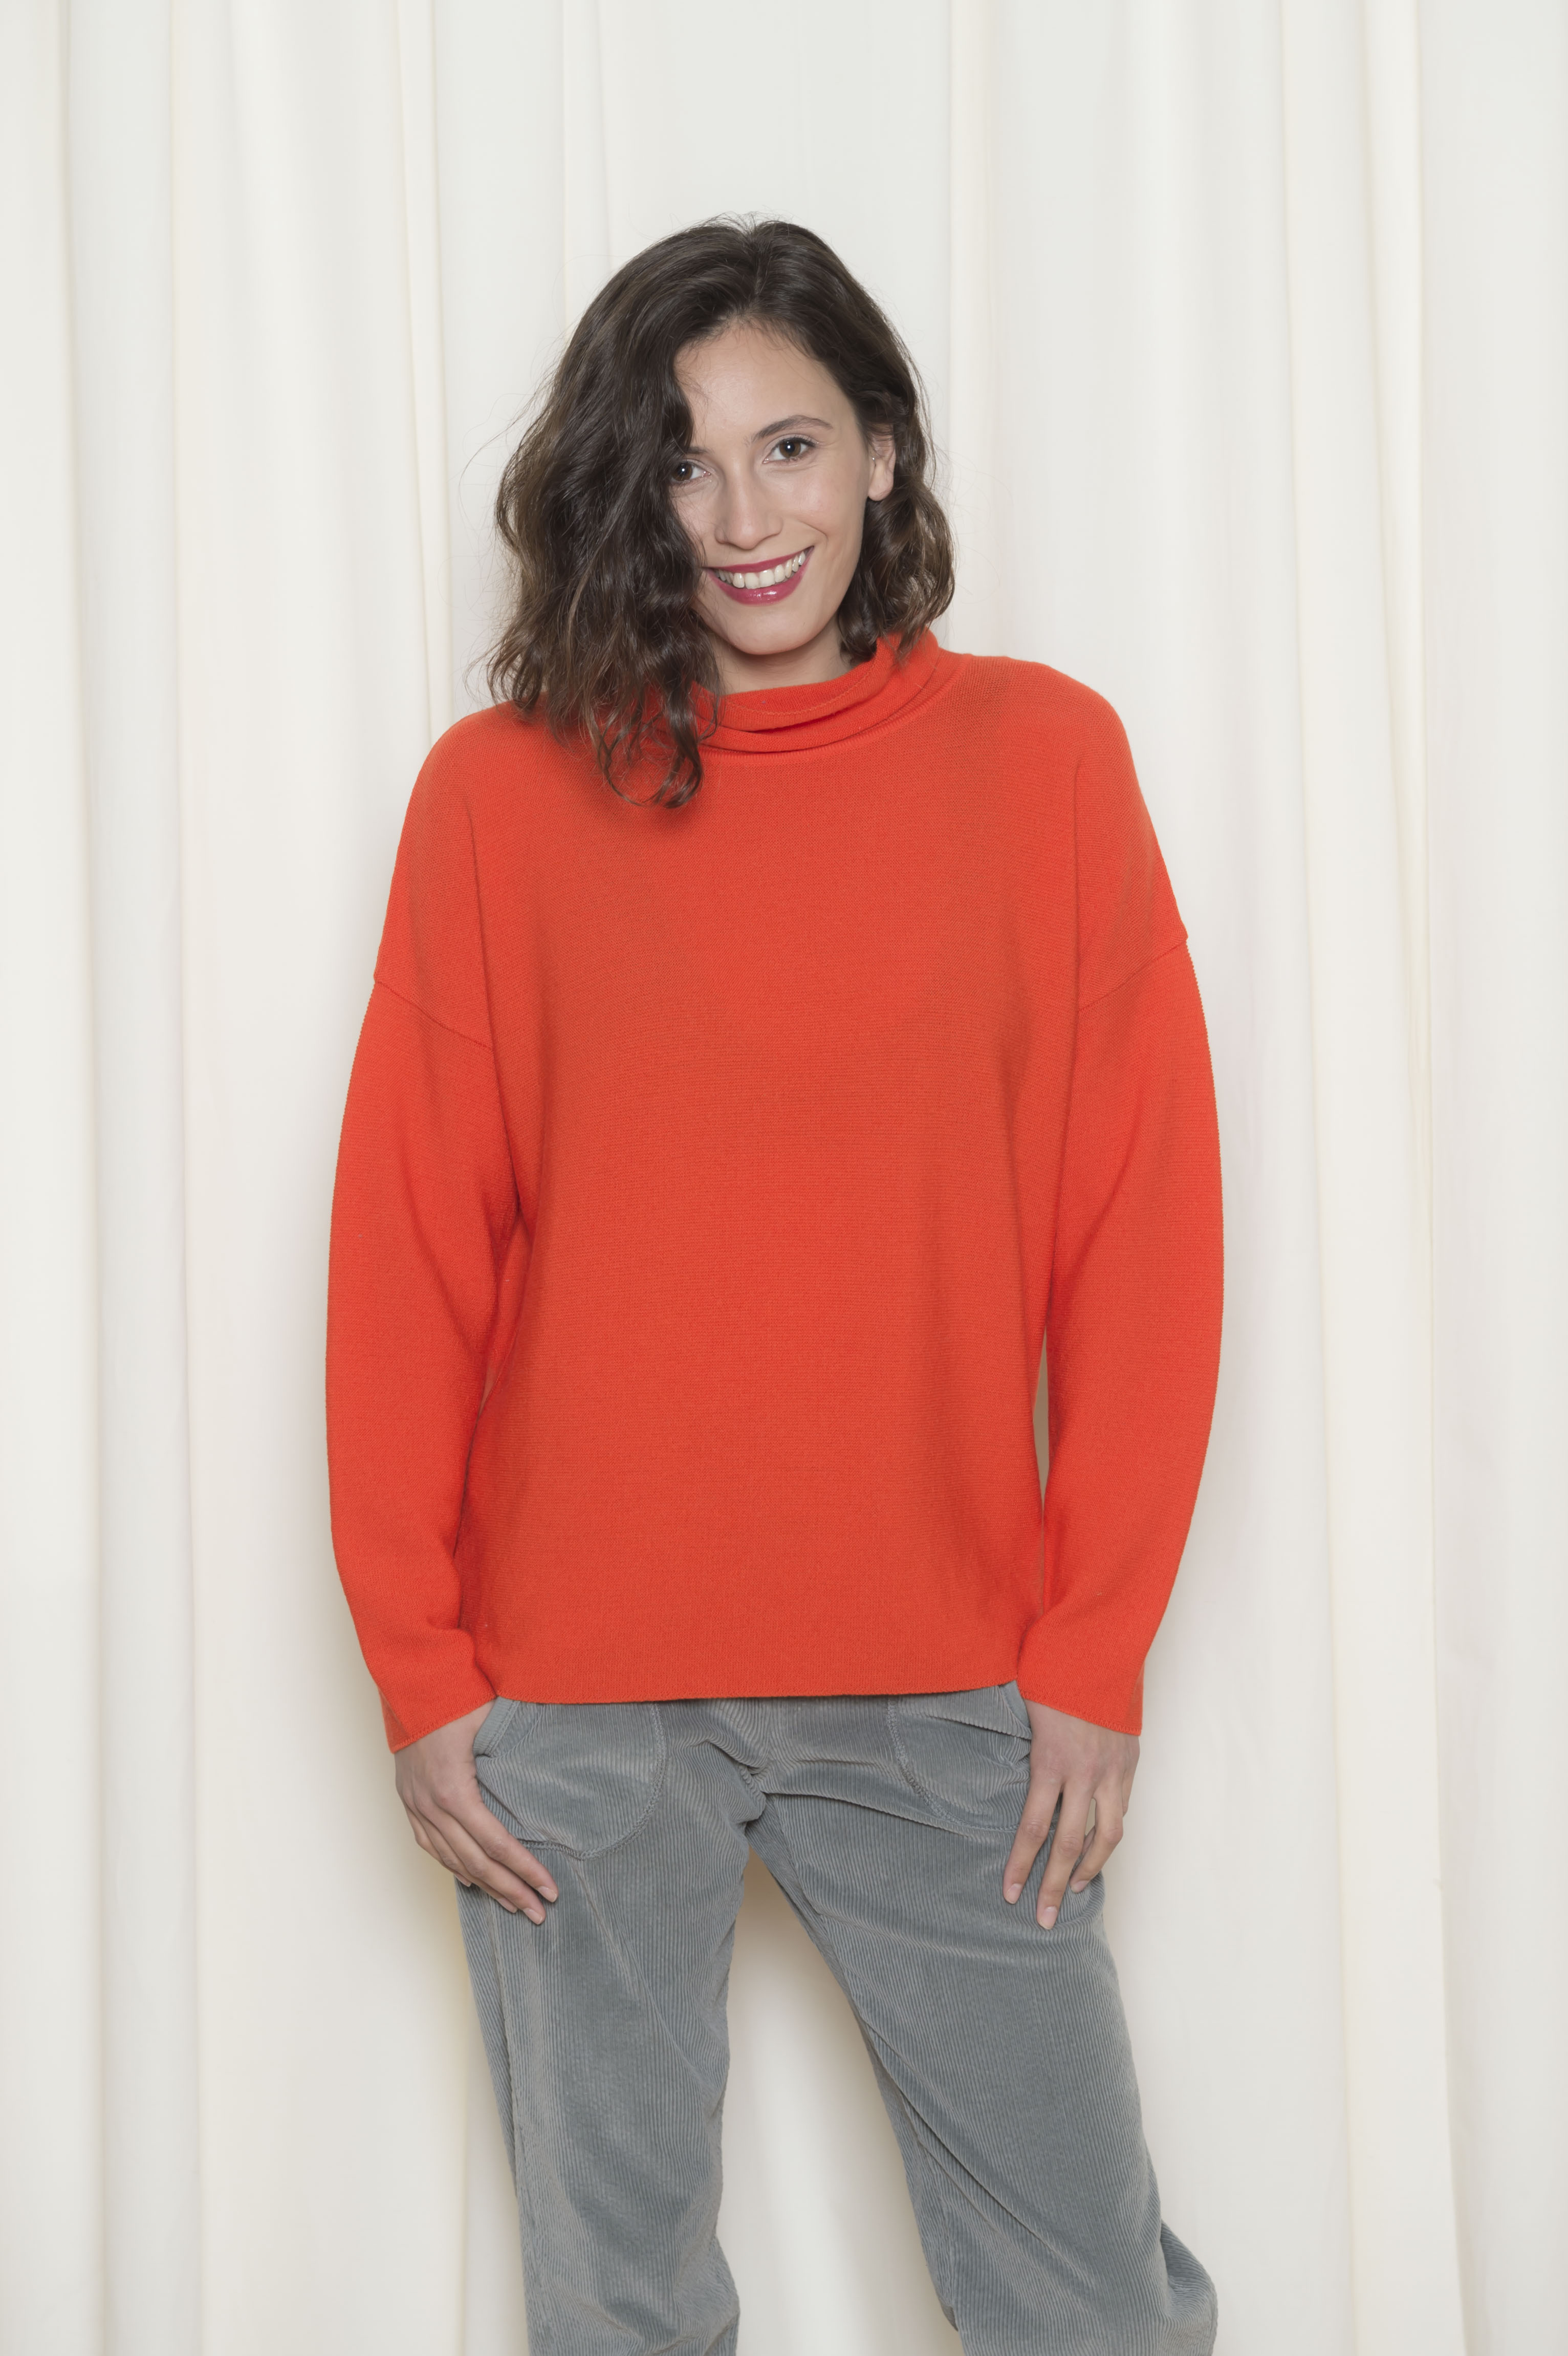 Find Women's Merino Wool Sweaters and Men's Merino Wool Sweaters when you shop at Macy's. Macy's Presents: The Edit - A curated mix of fashion and inspiration Check It Out Free Shipping with $75 purchase + Free Store Pickup.